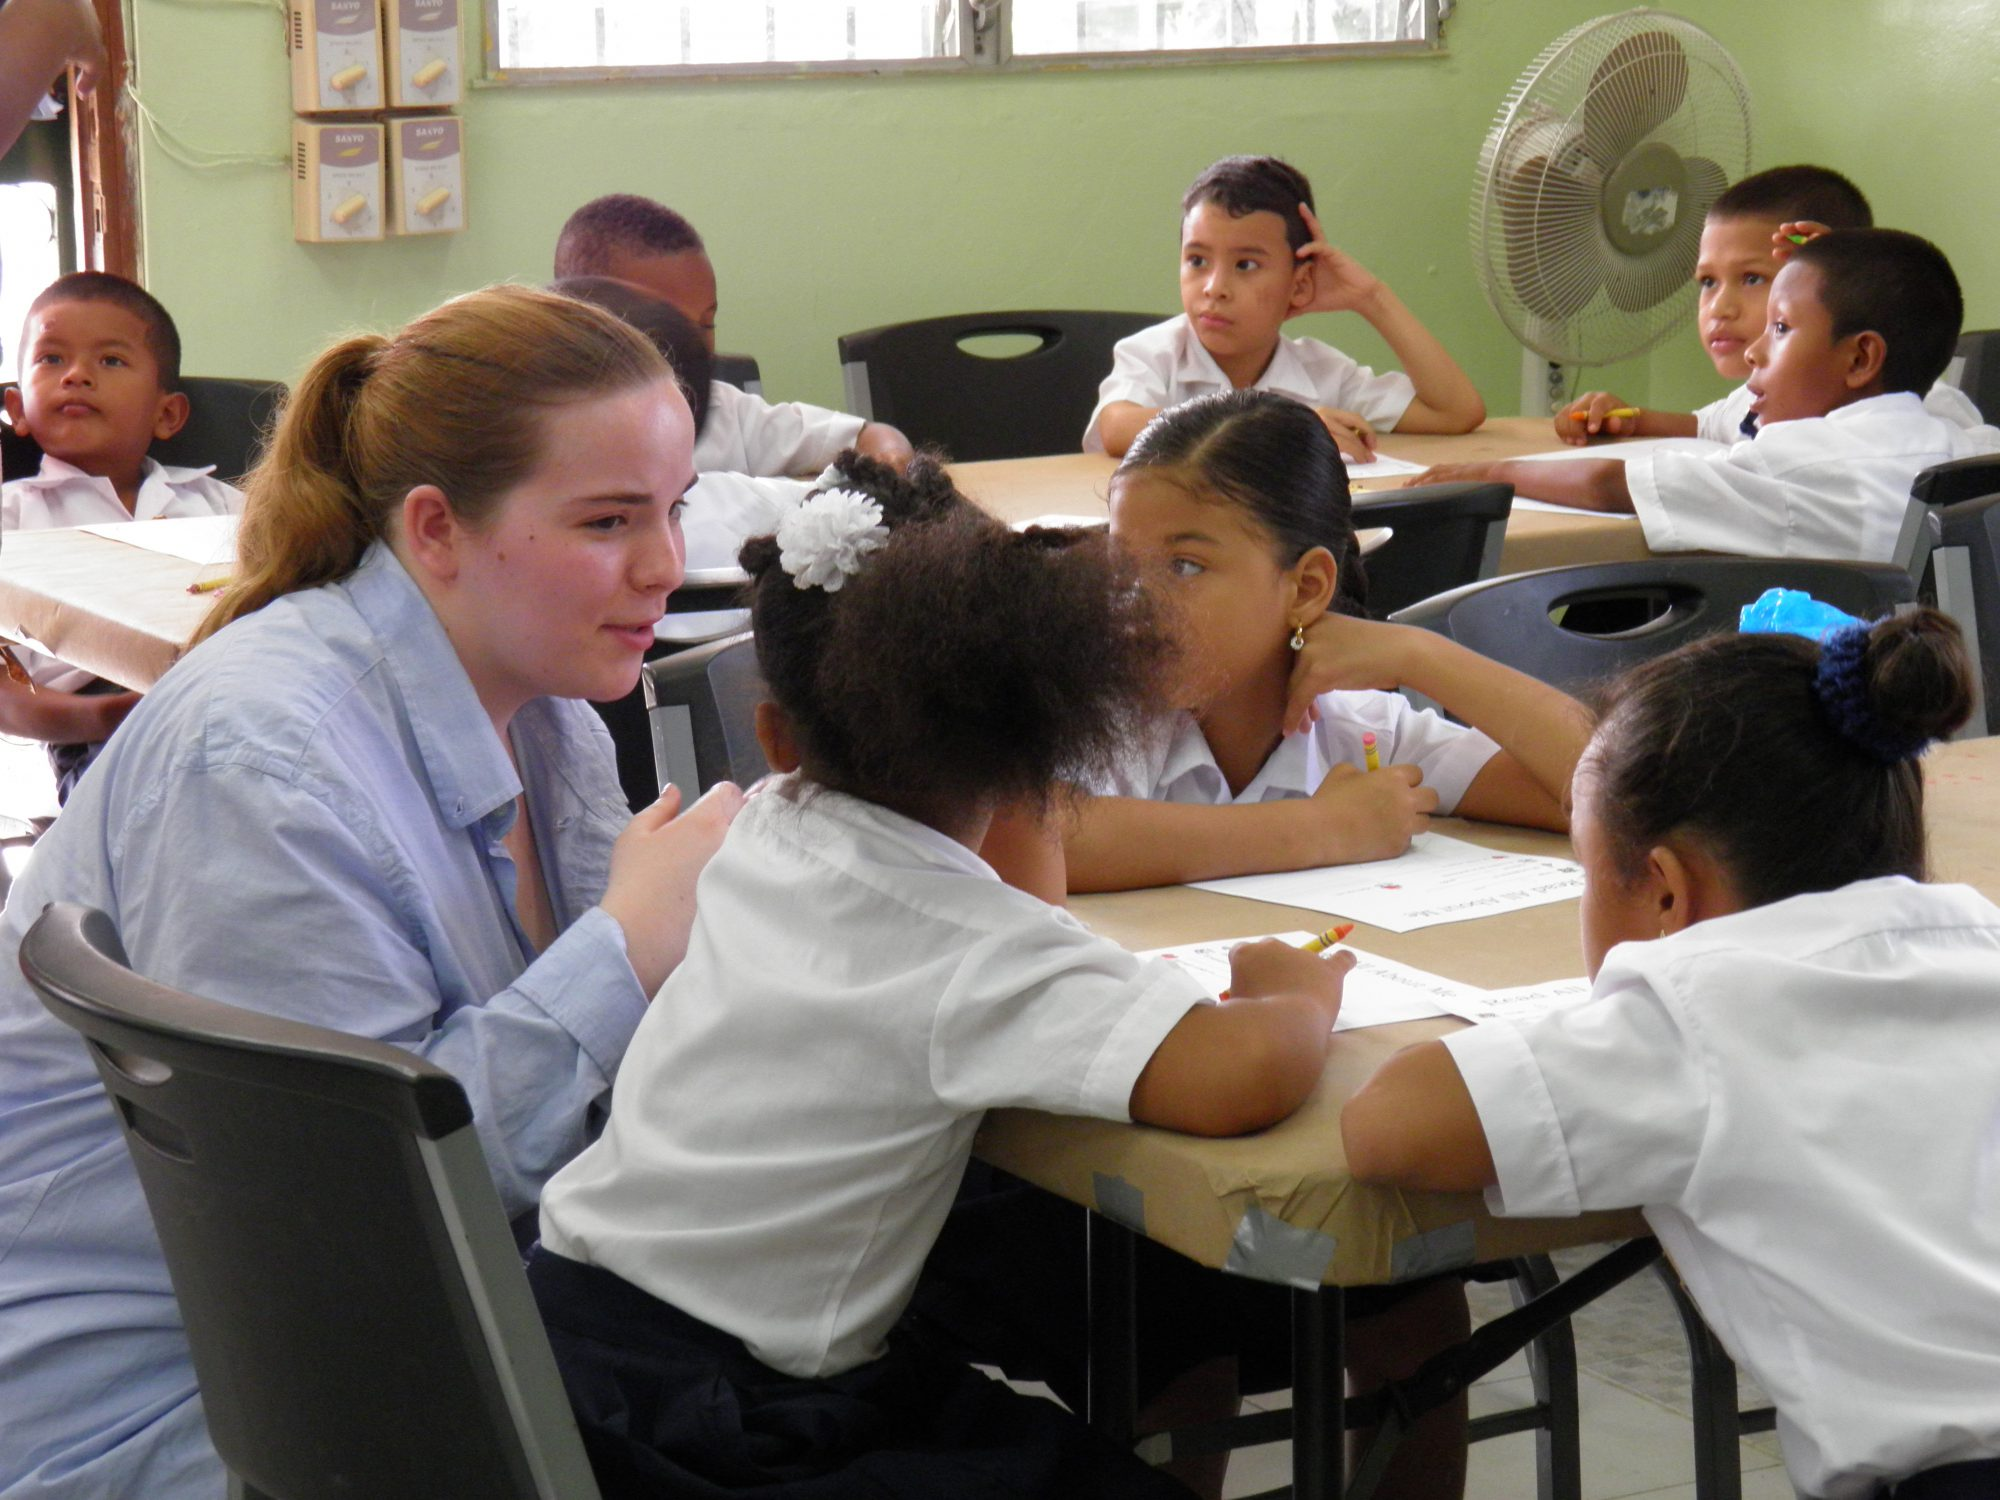 McMaster Scholar Teaching in Classroom